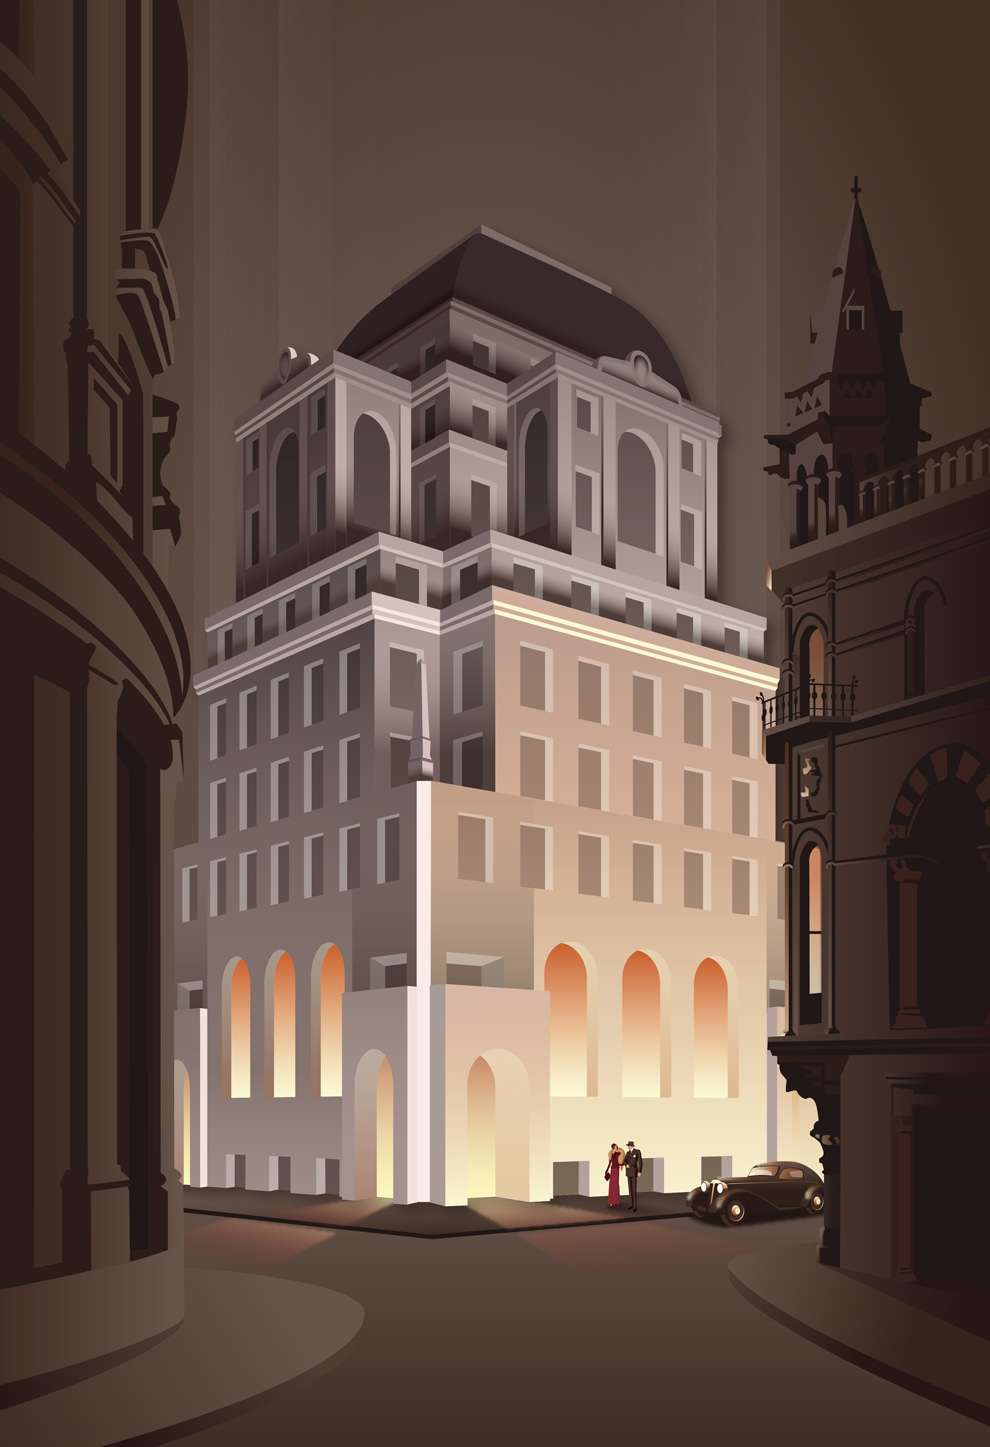 Stephen  Millership, Cityscape illustration. Bold architectural element in the background lighted up